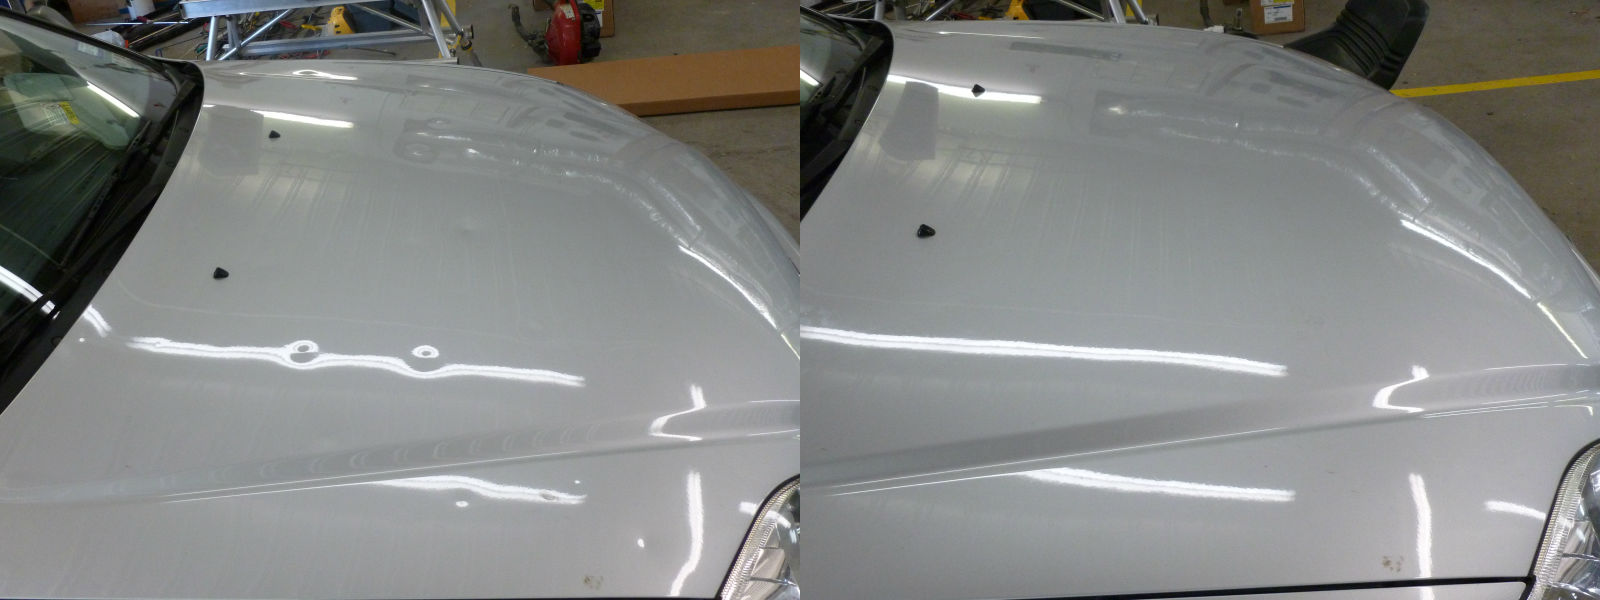 Can Hail Damage On A Car Be Repaired